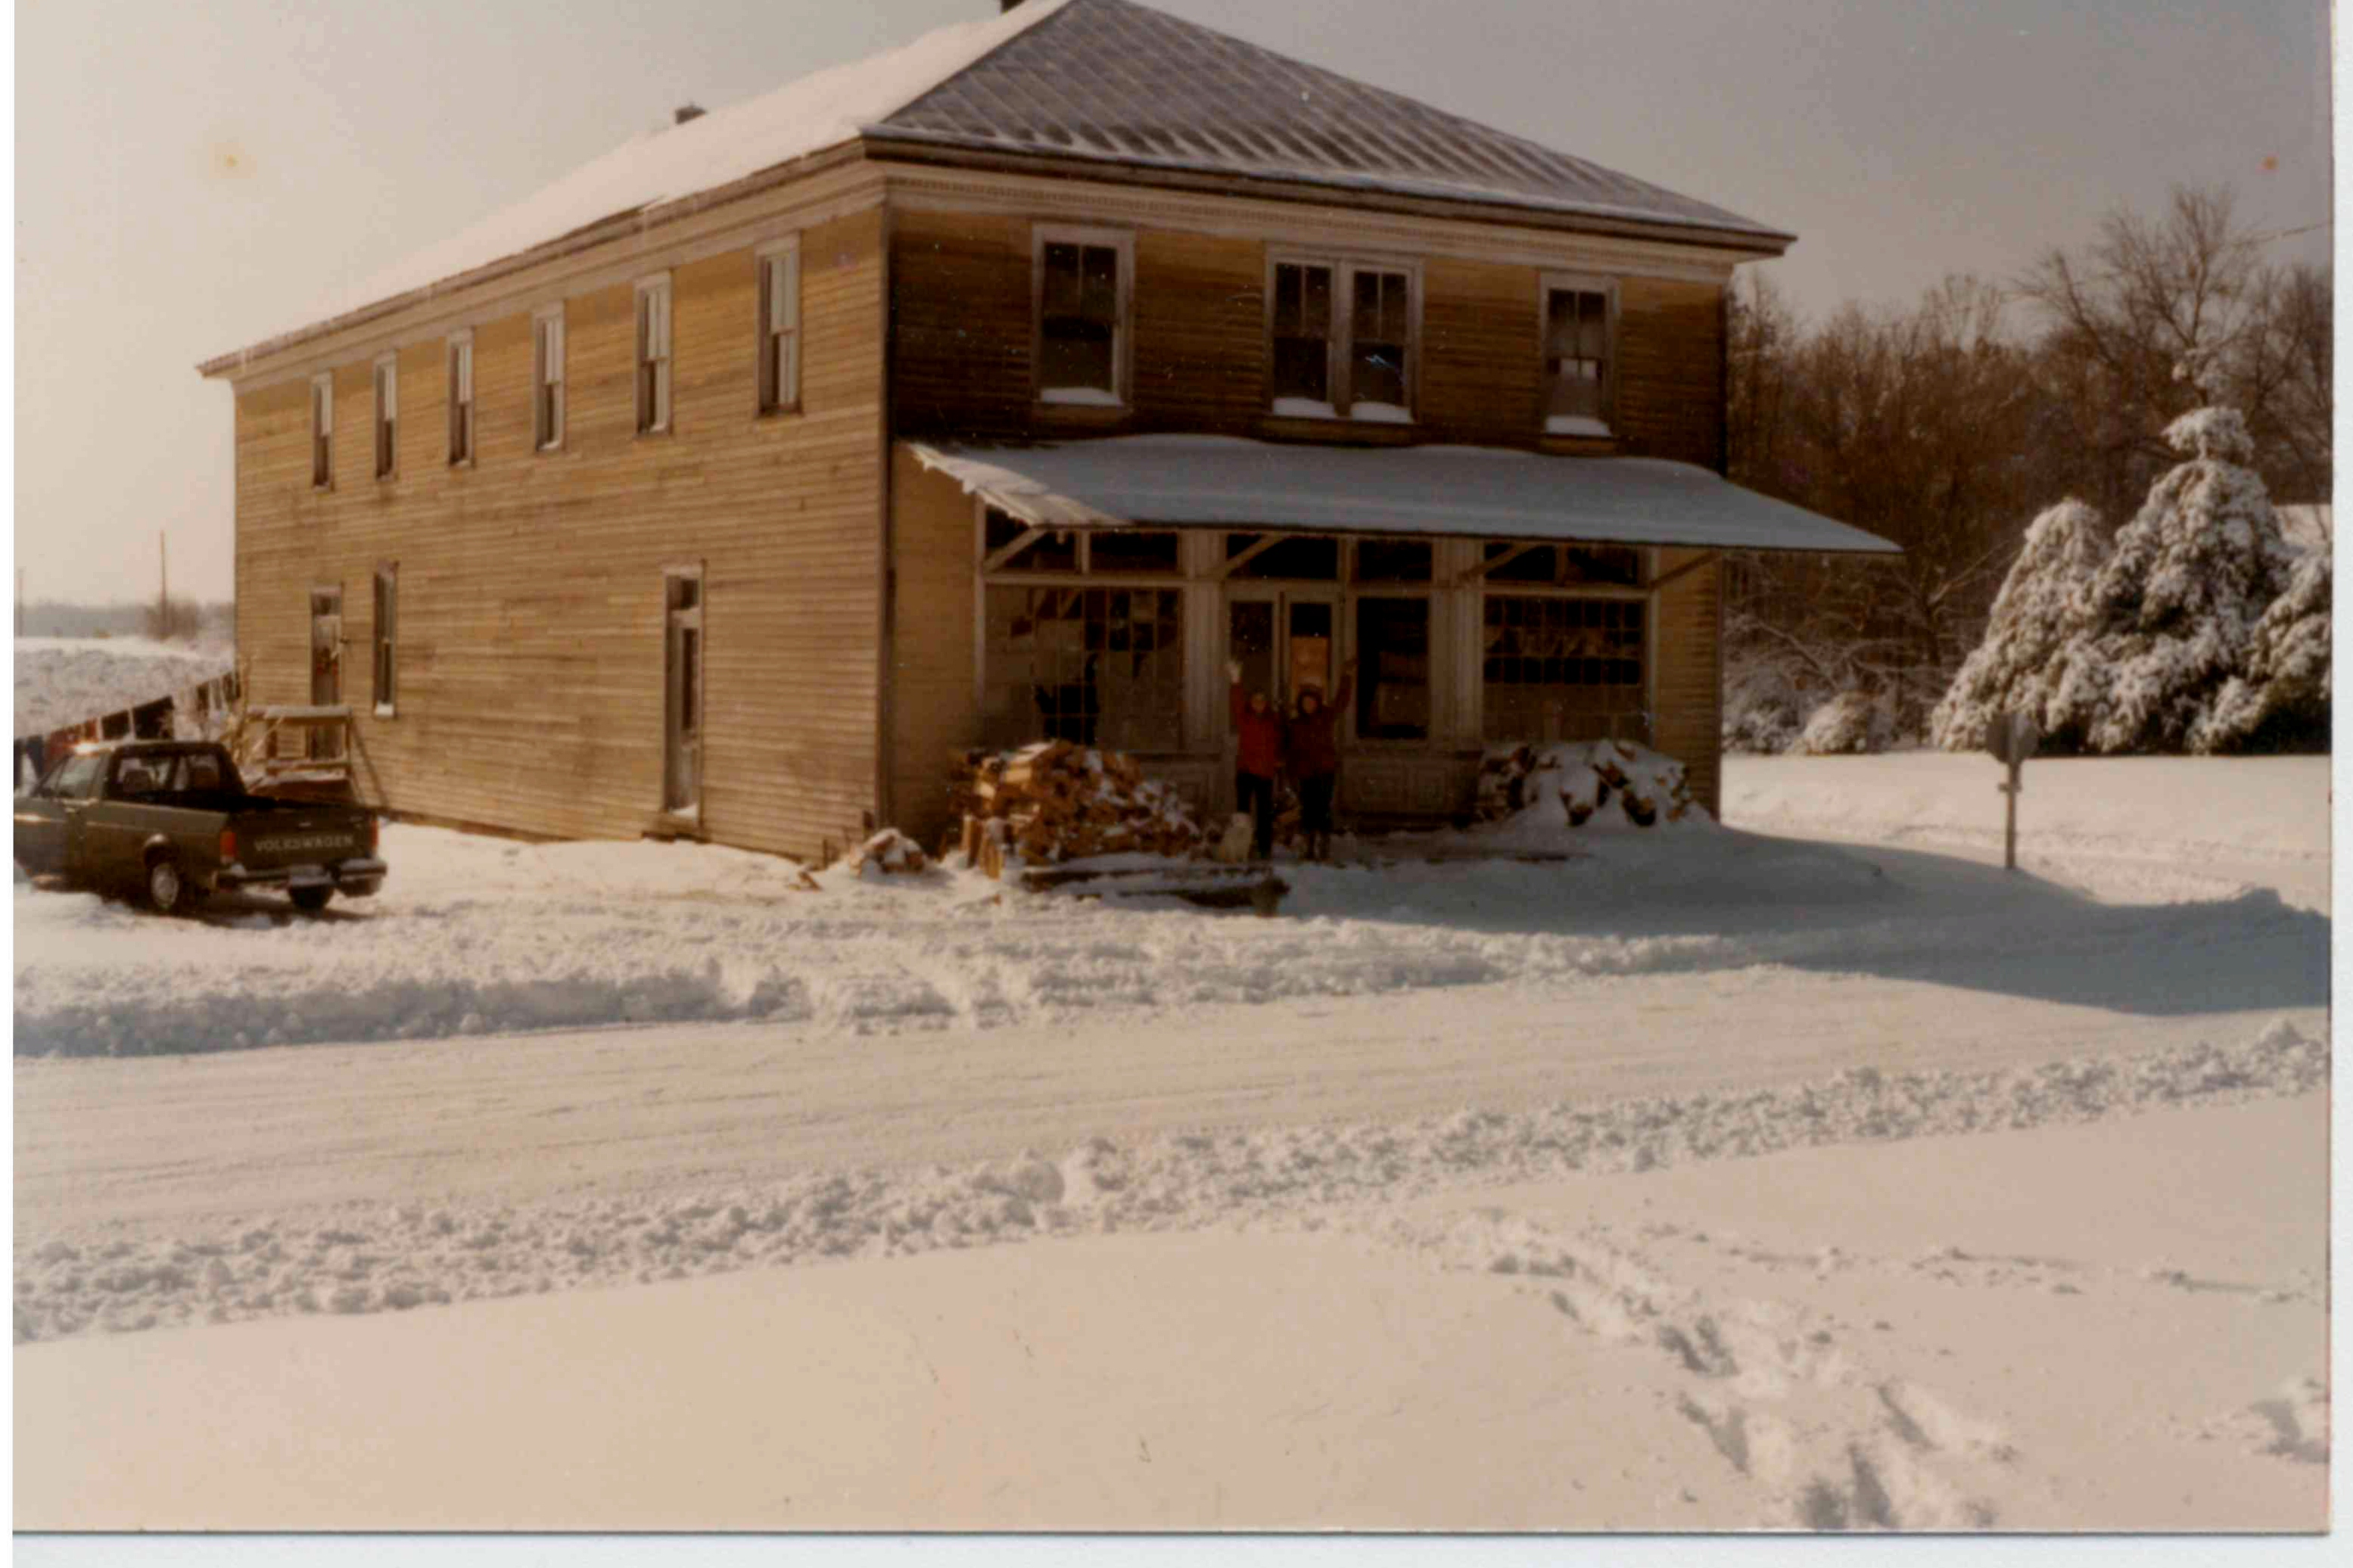 Snow in the 80's, no trees behind the house!